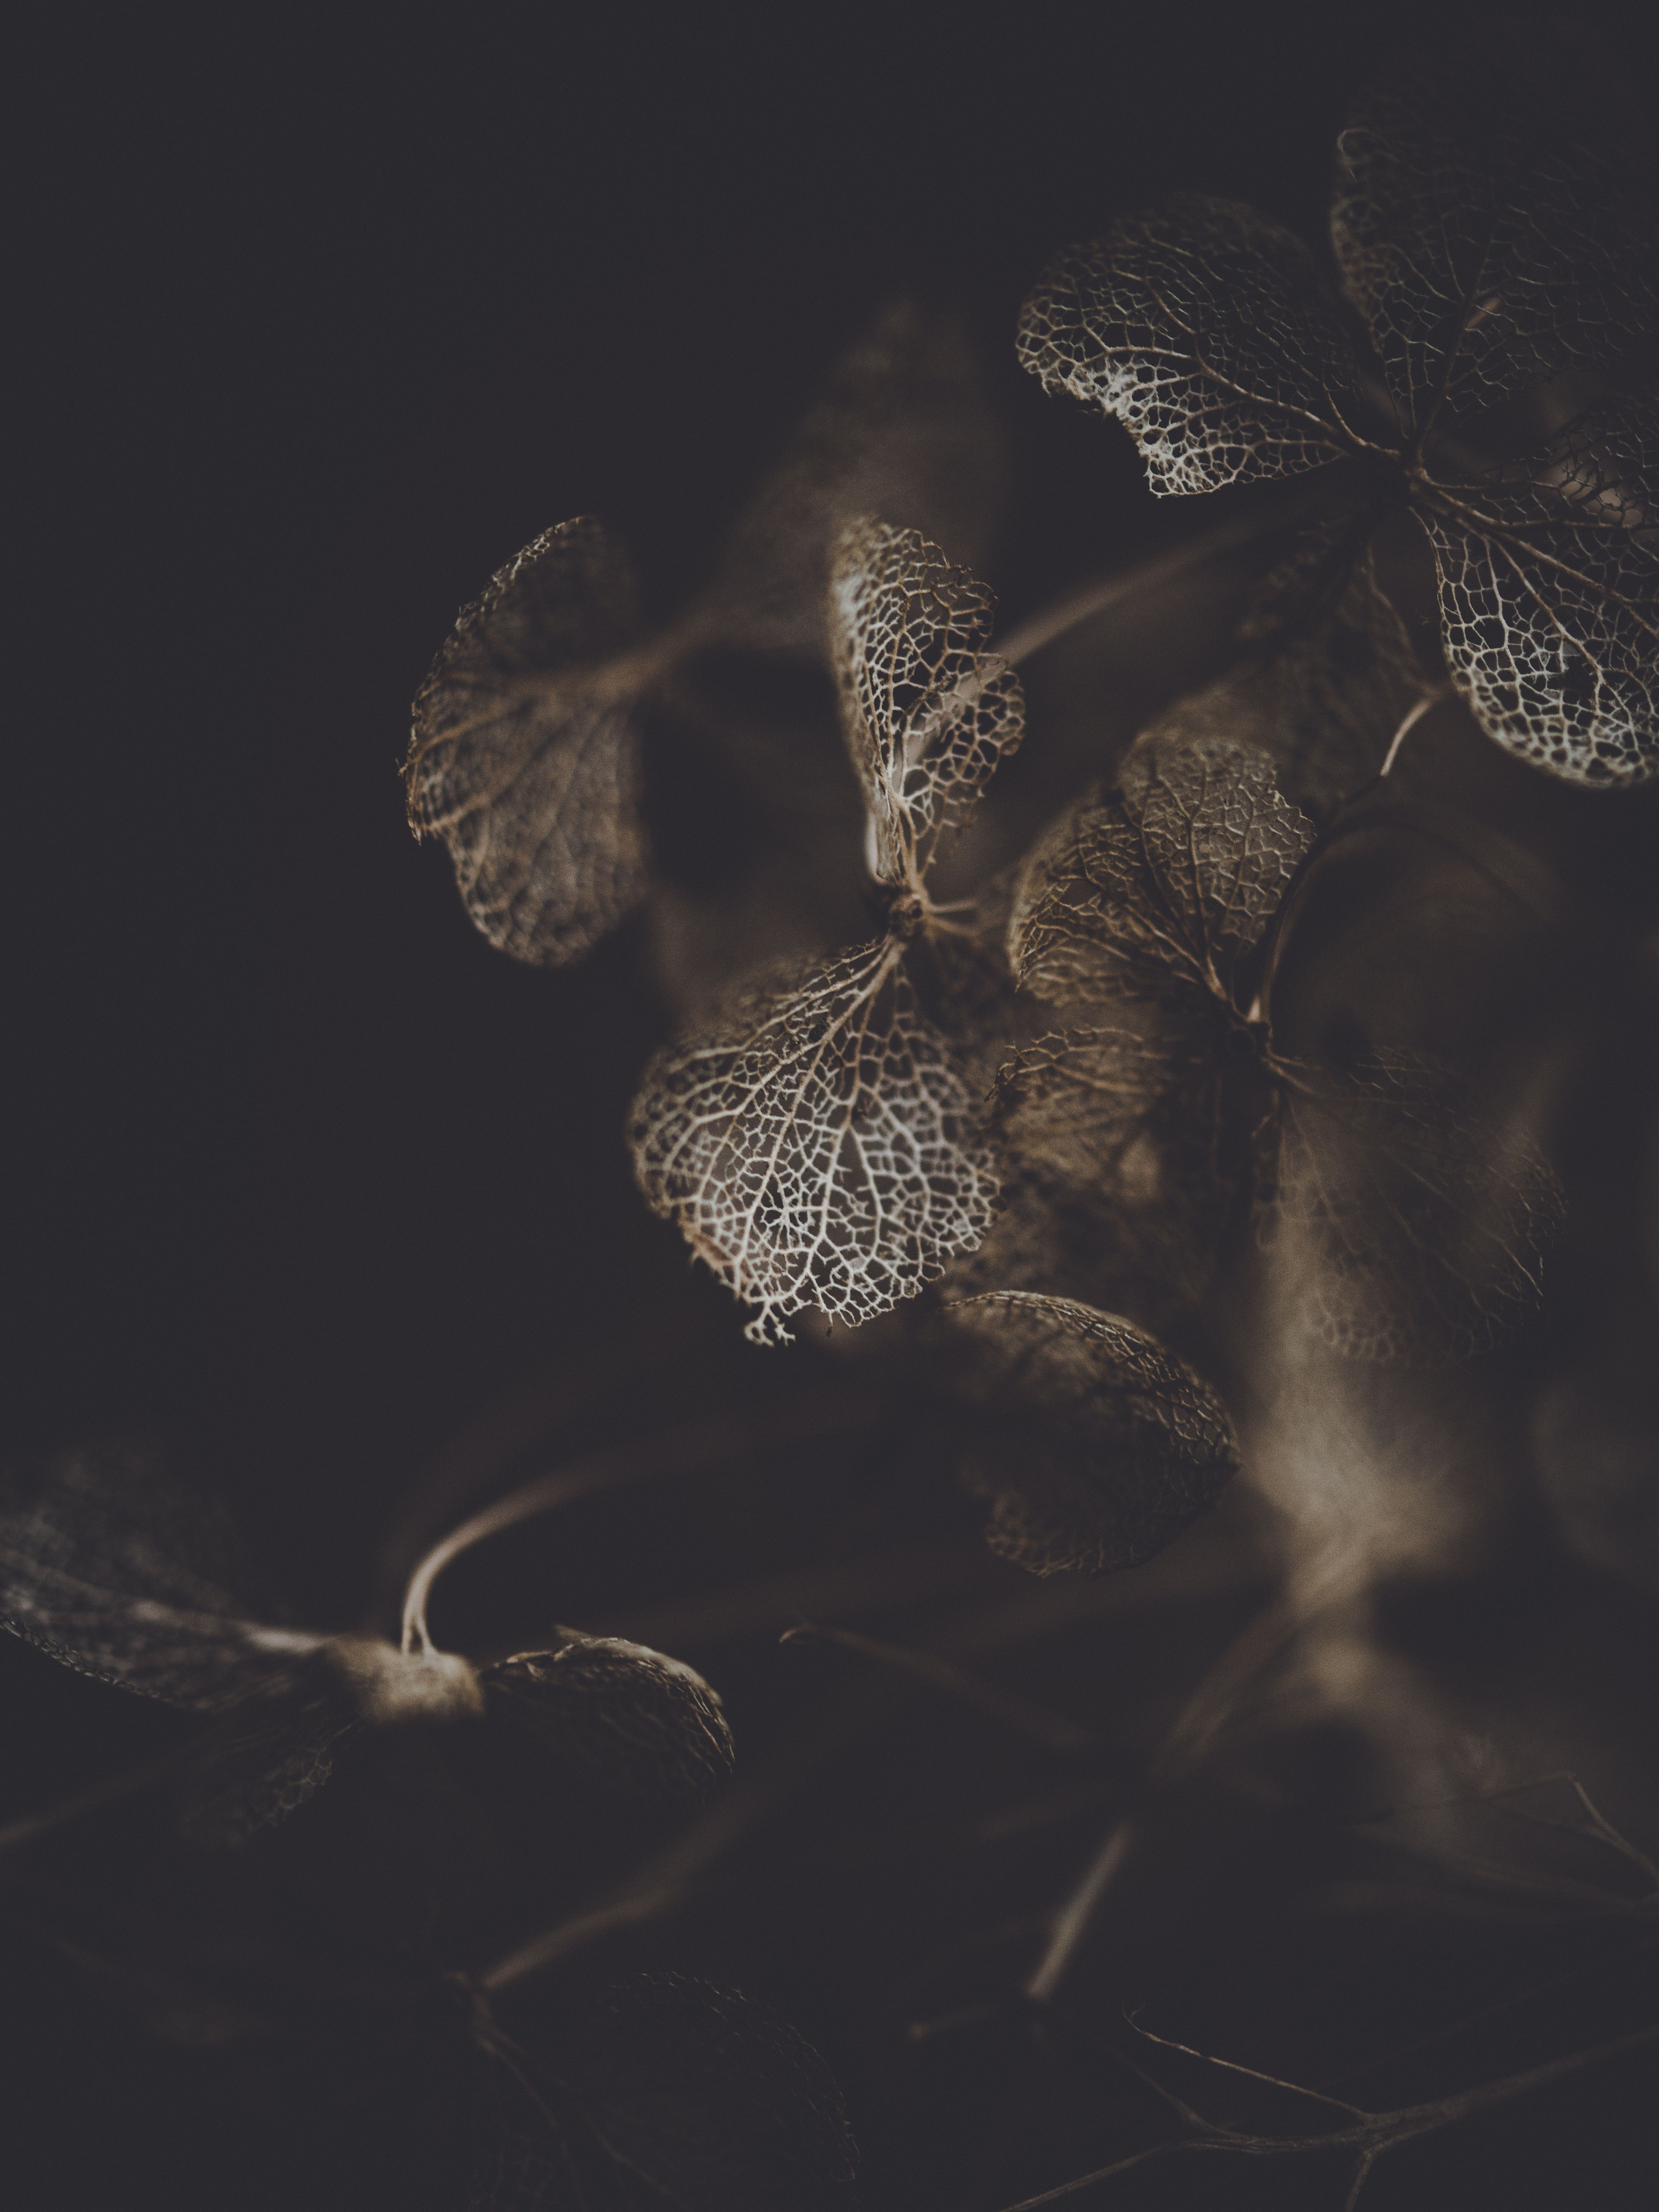 brown plant against dark background RICOH IMAGING COMPANY LTD 6144x8192